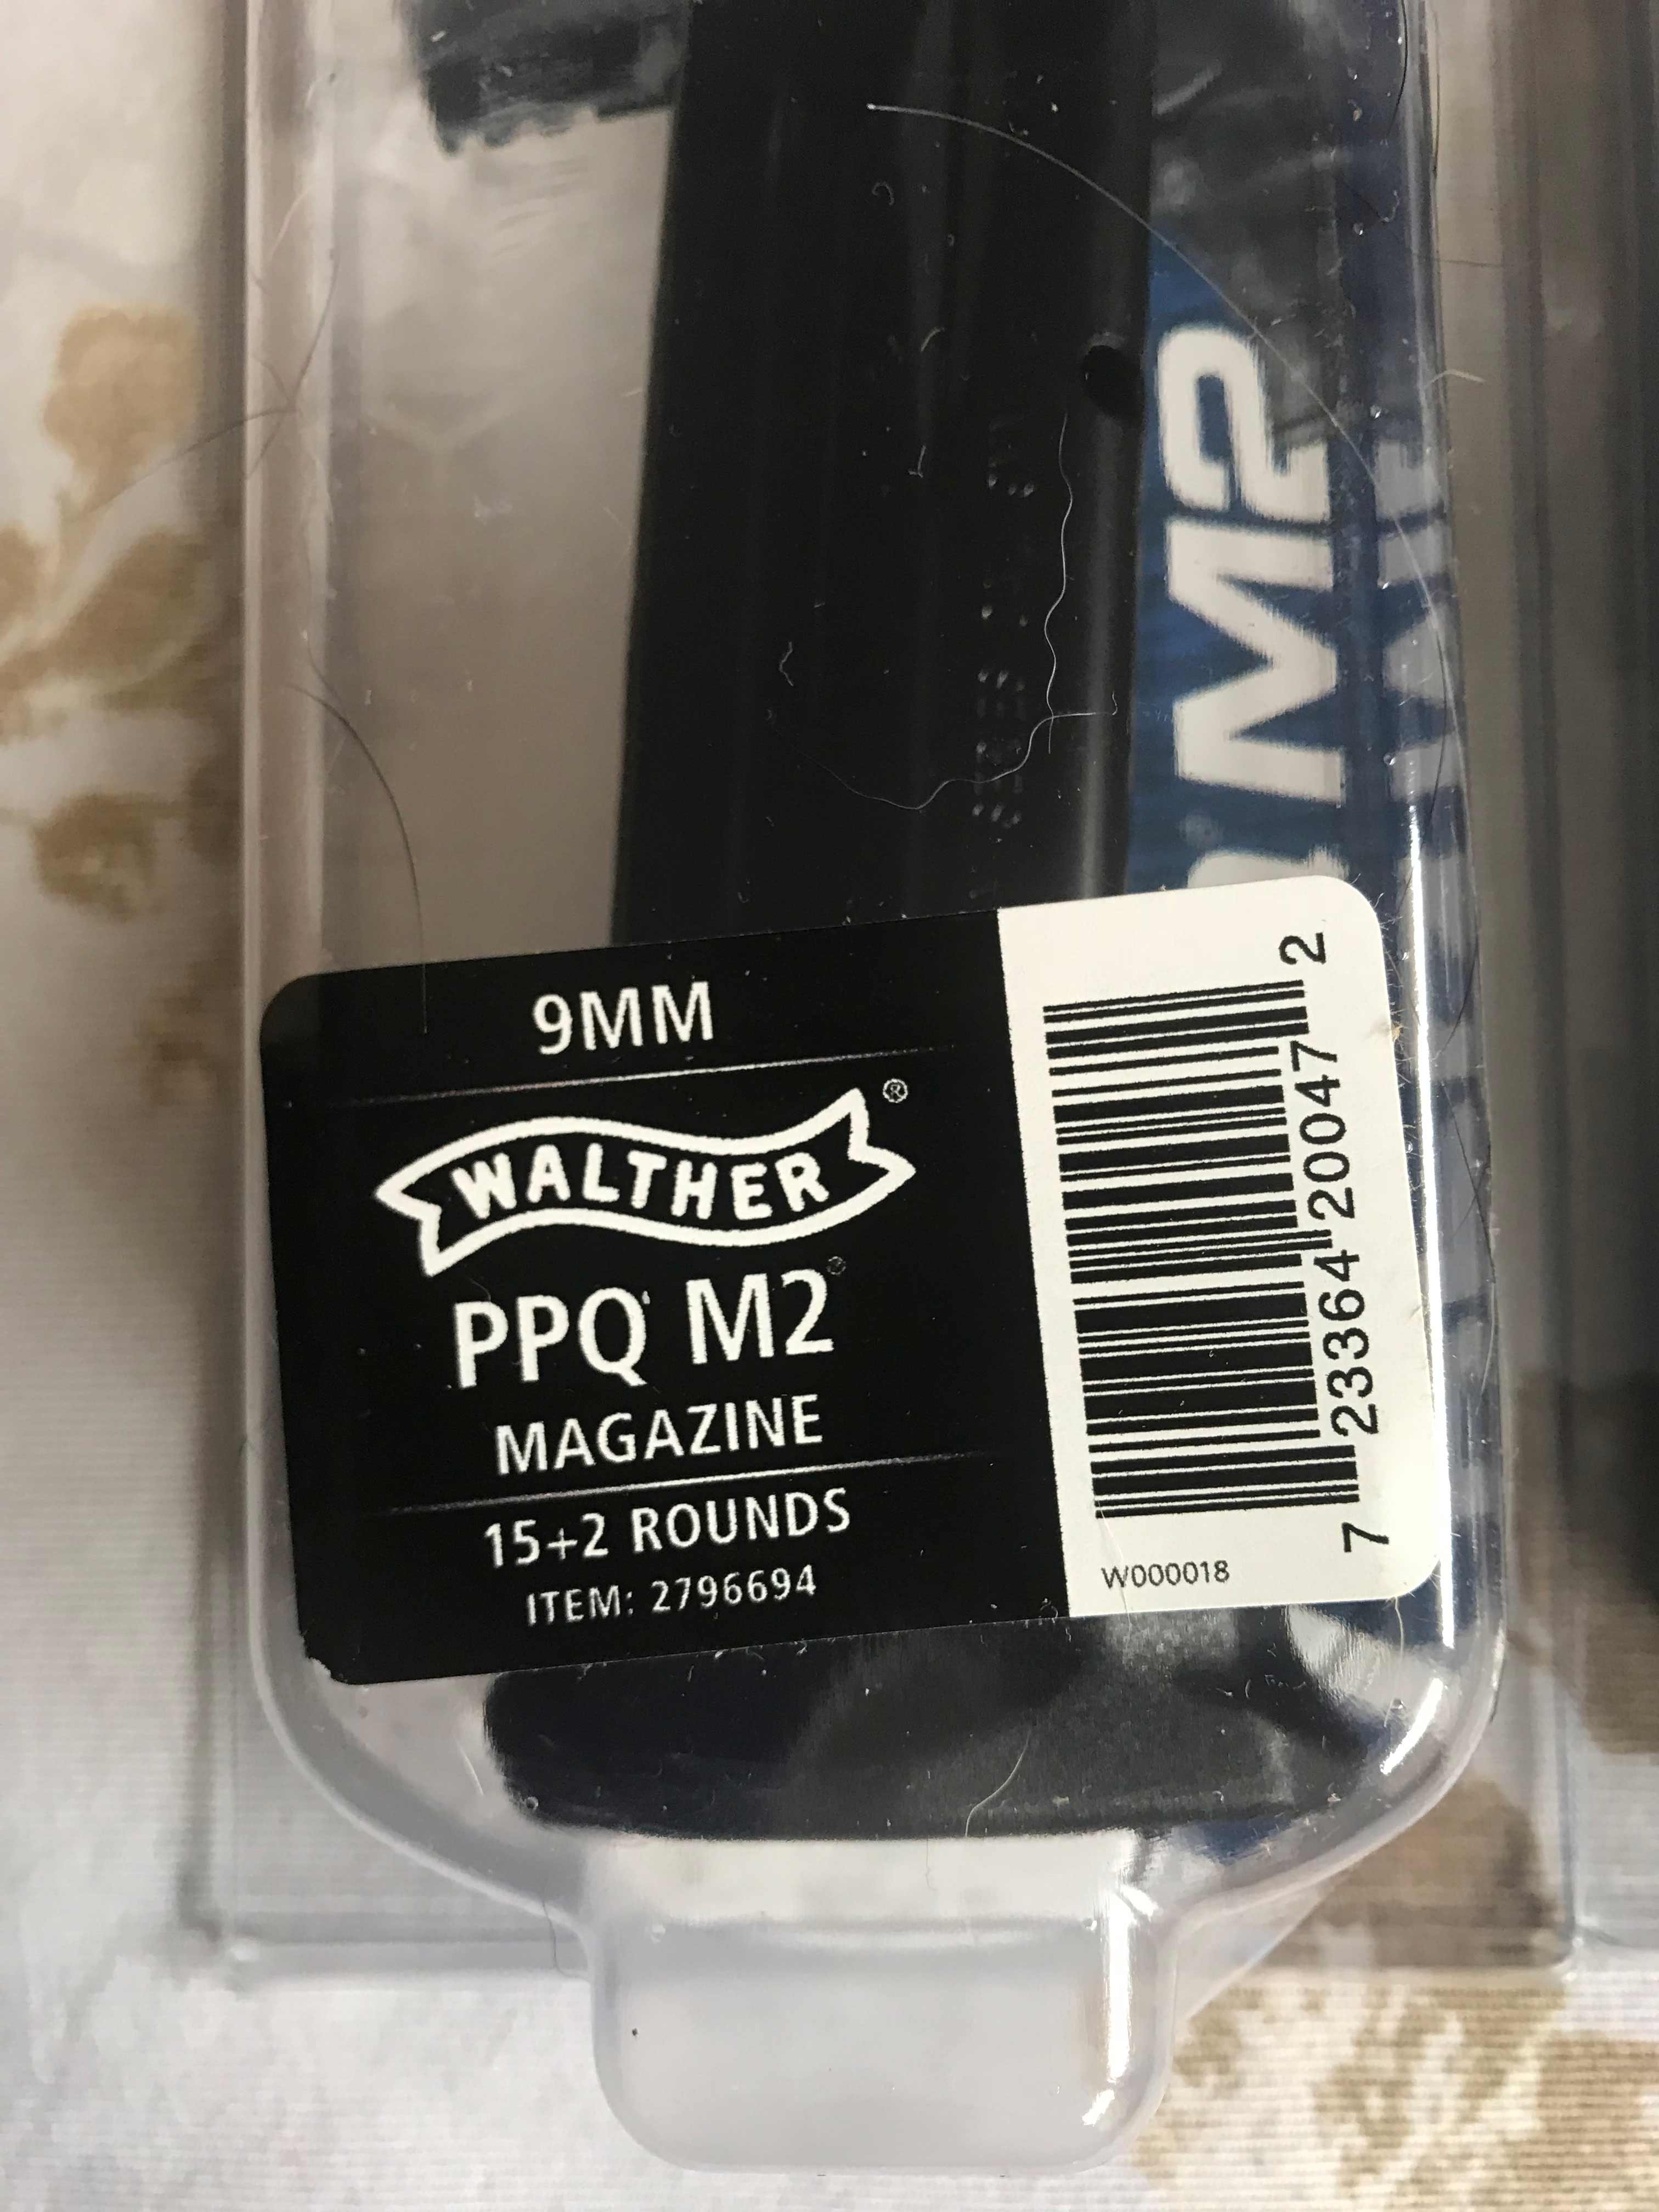 3-9mm Walther PPQ M2 15+2 mags New In Box-ppqmags3.jpg